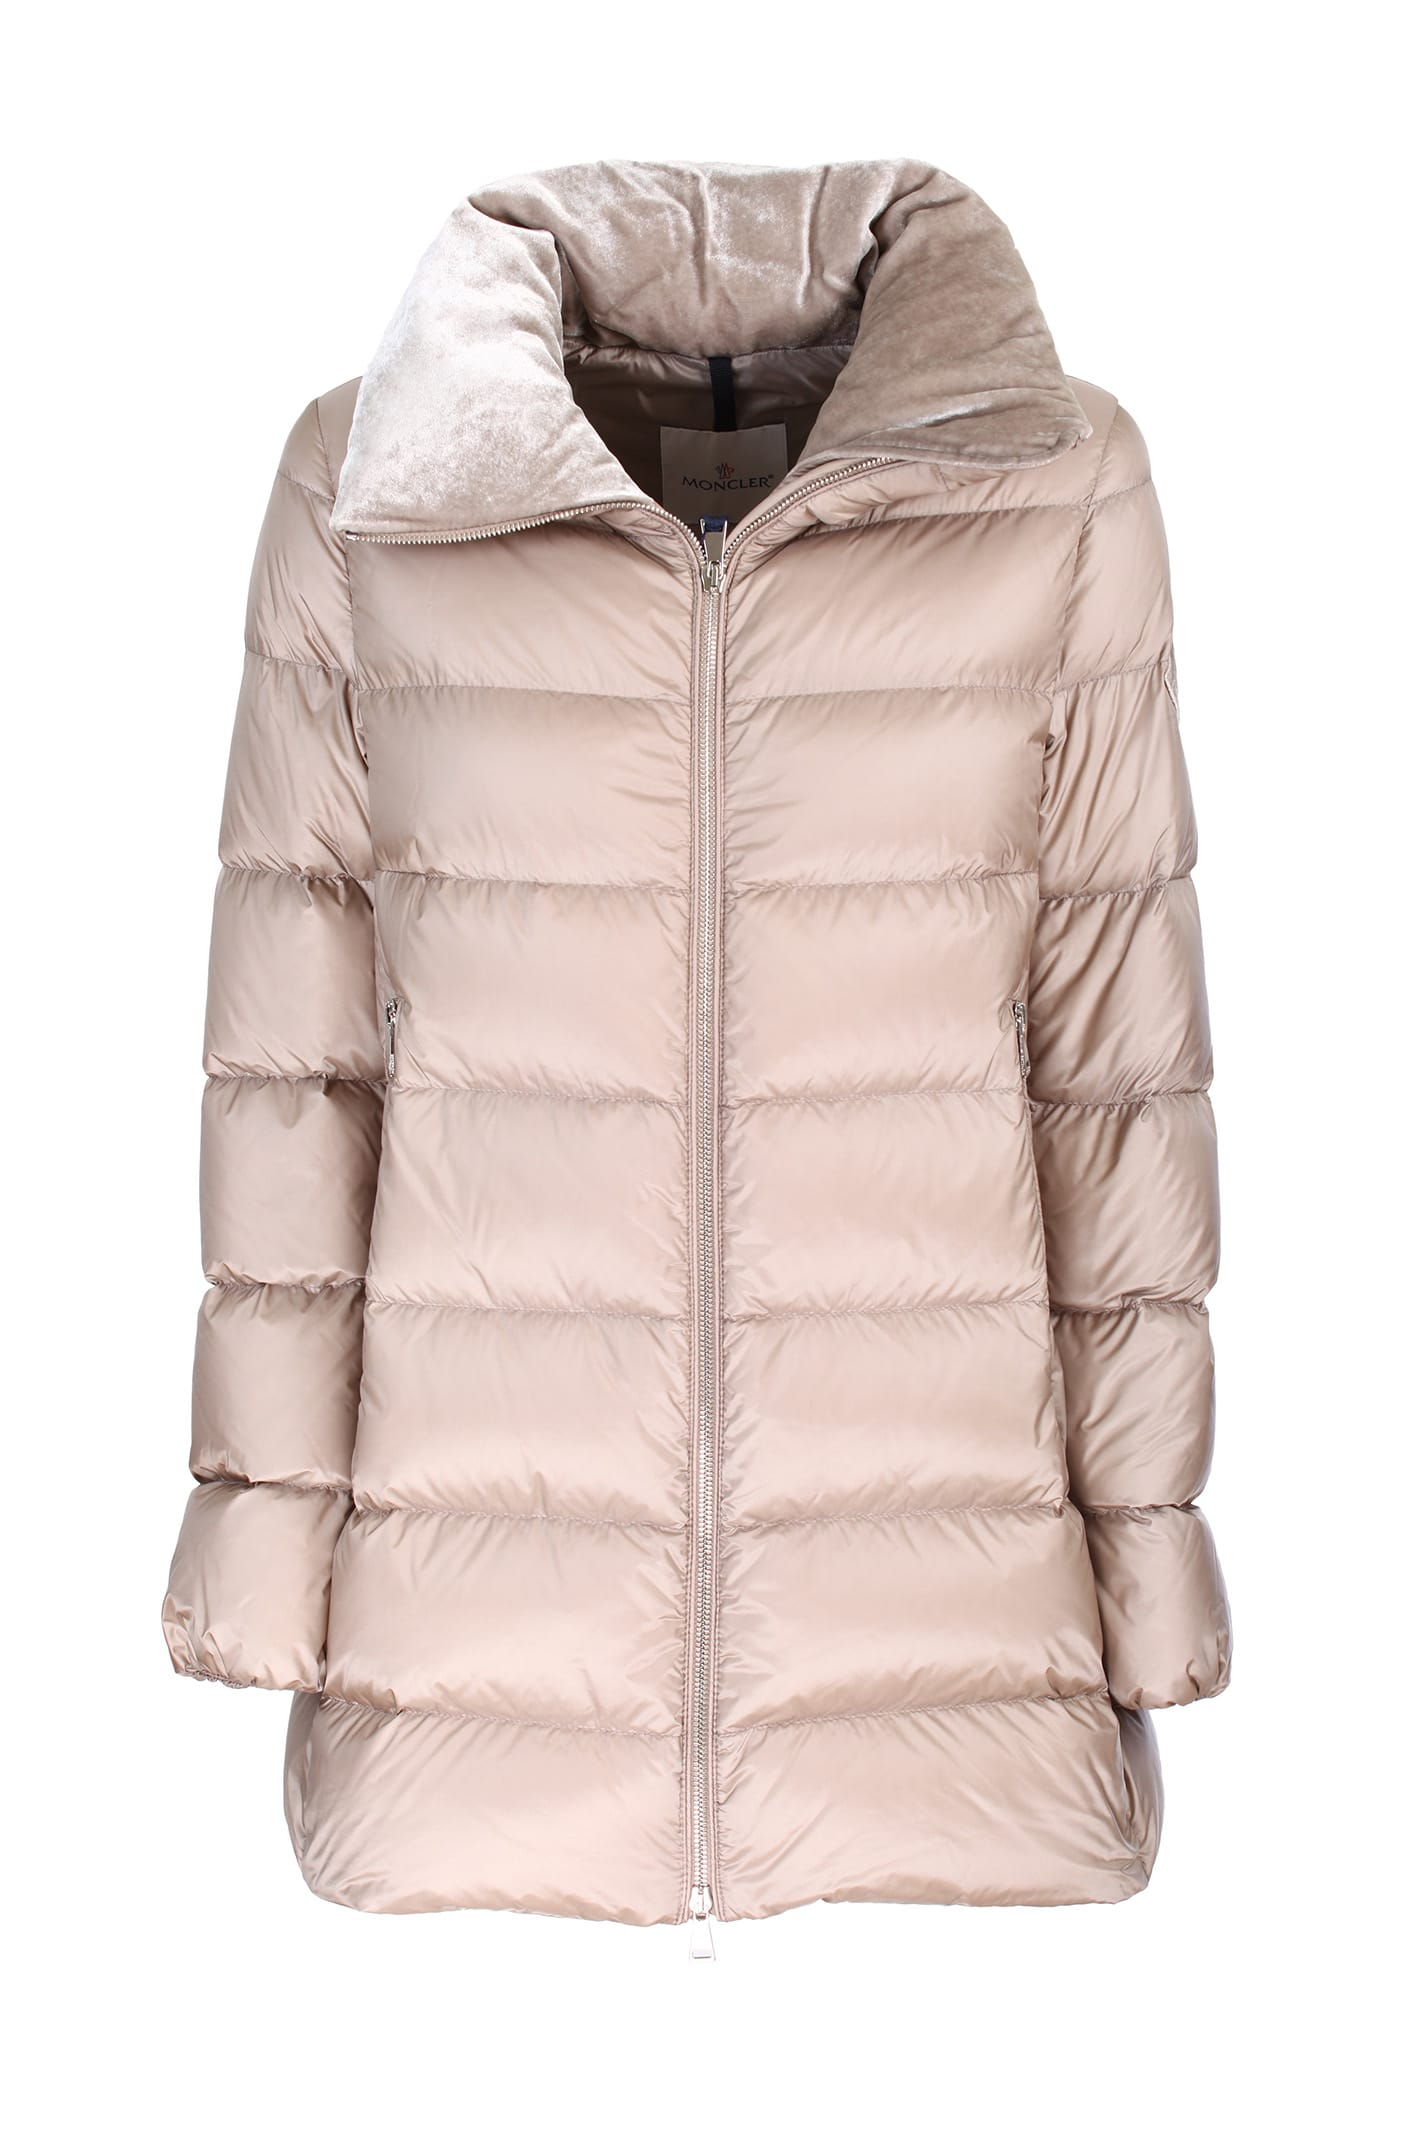 Moncler giaccone Torcon